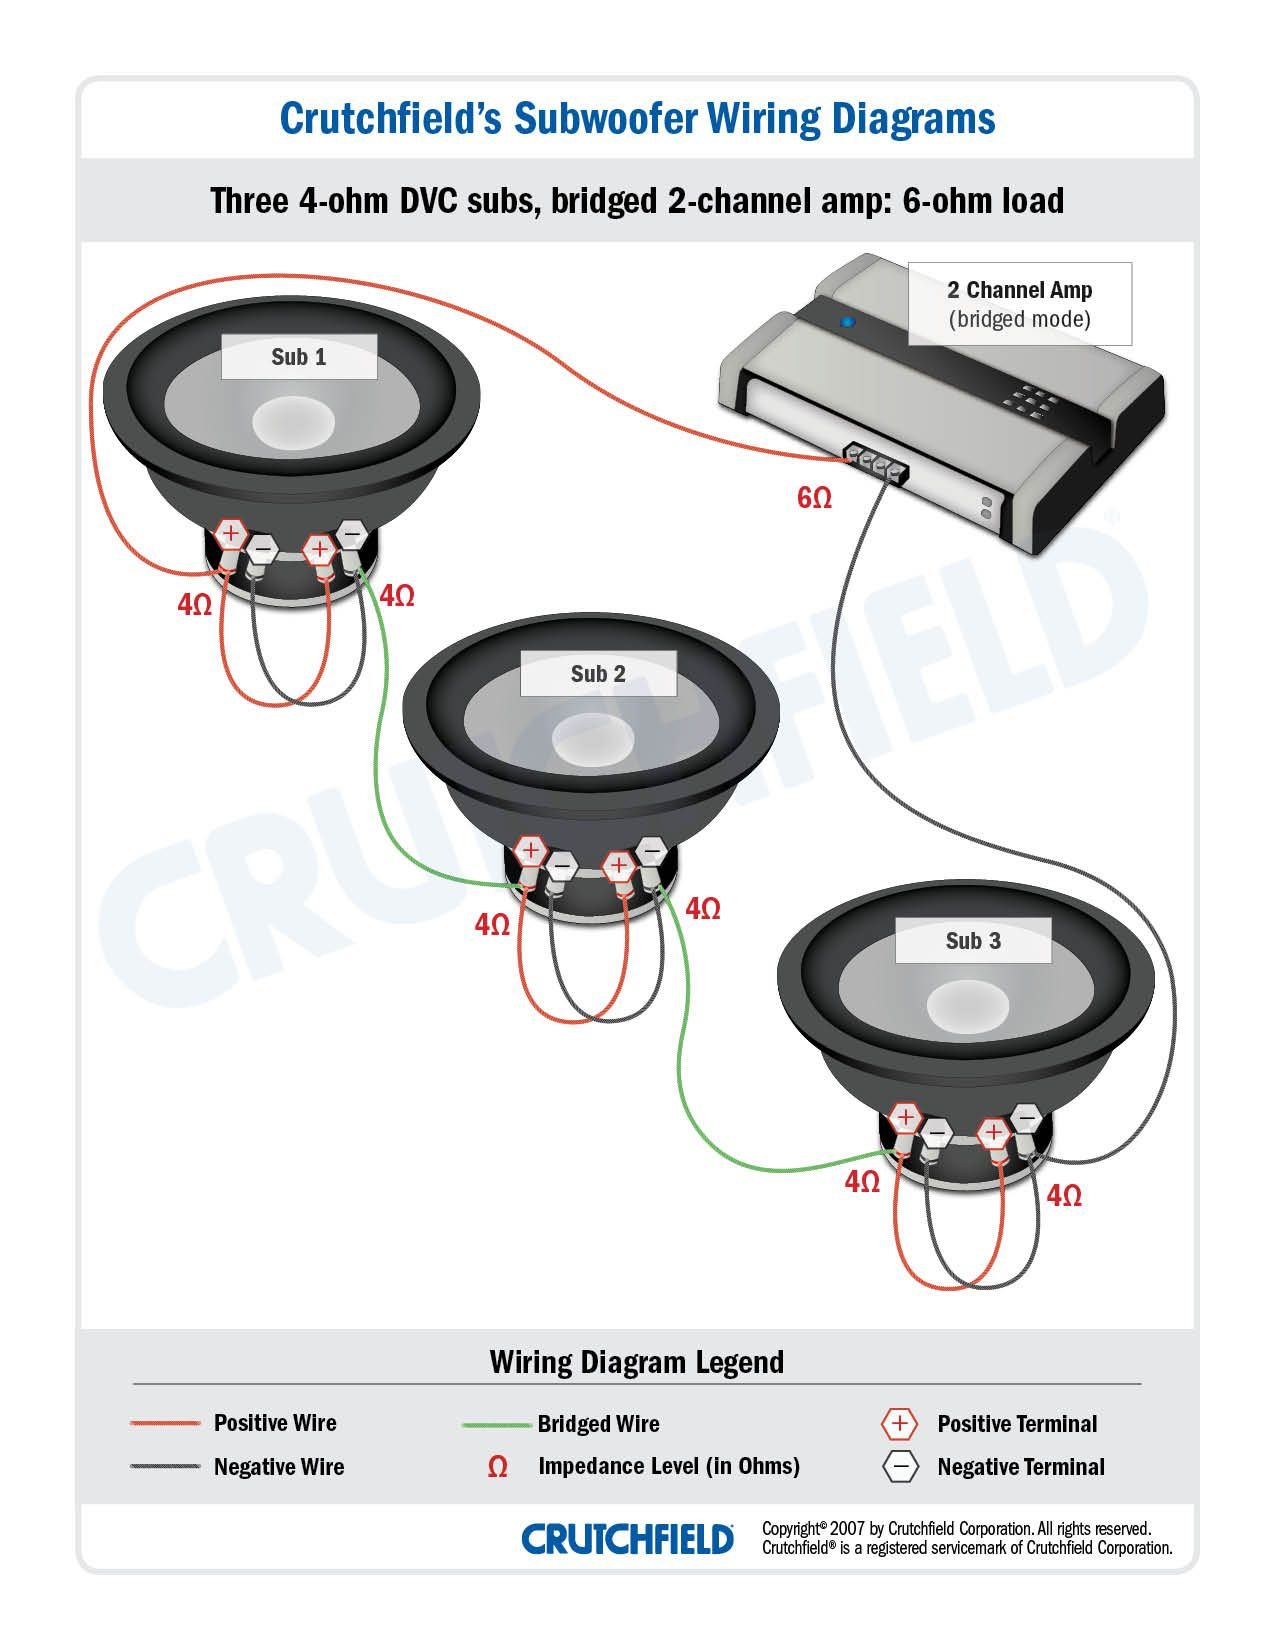 rockford fosgate subwoofer wiring diagram wiring diagrams second xterra rockford fosgate wiring diagram rockford fosgate wiring diagrams [ 1275 x 1650 Pixel ]